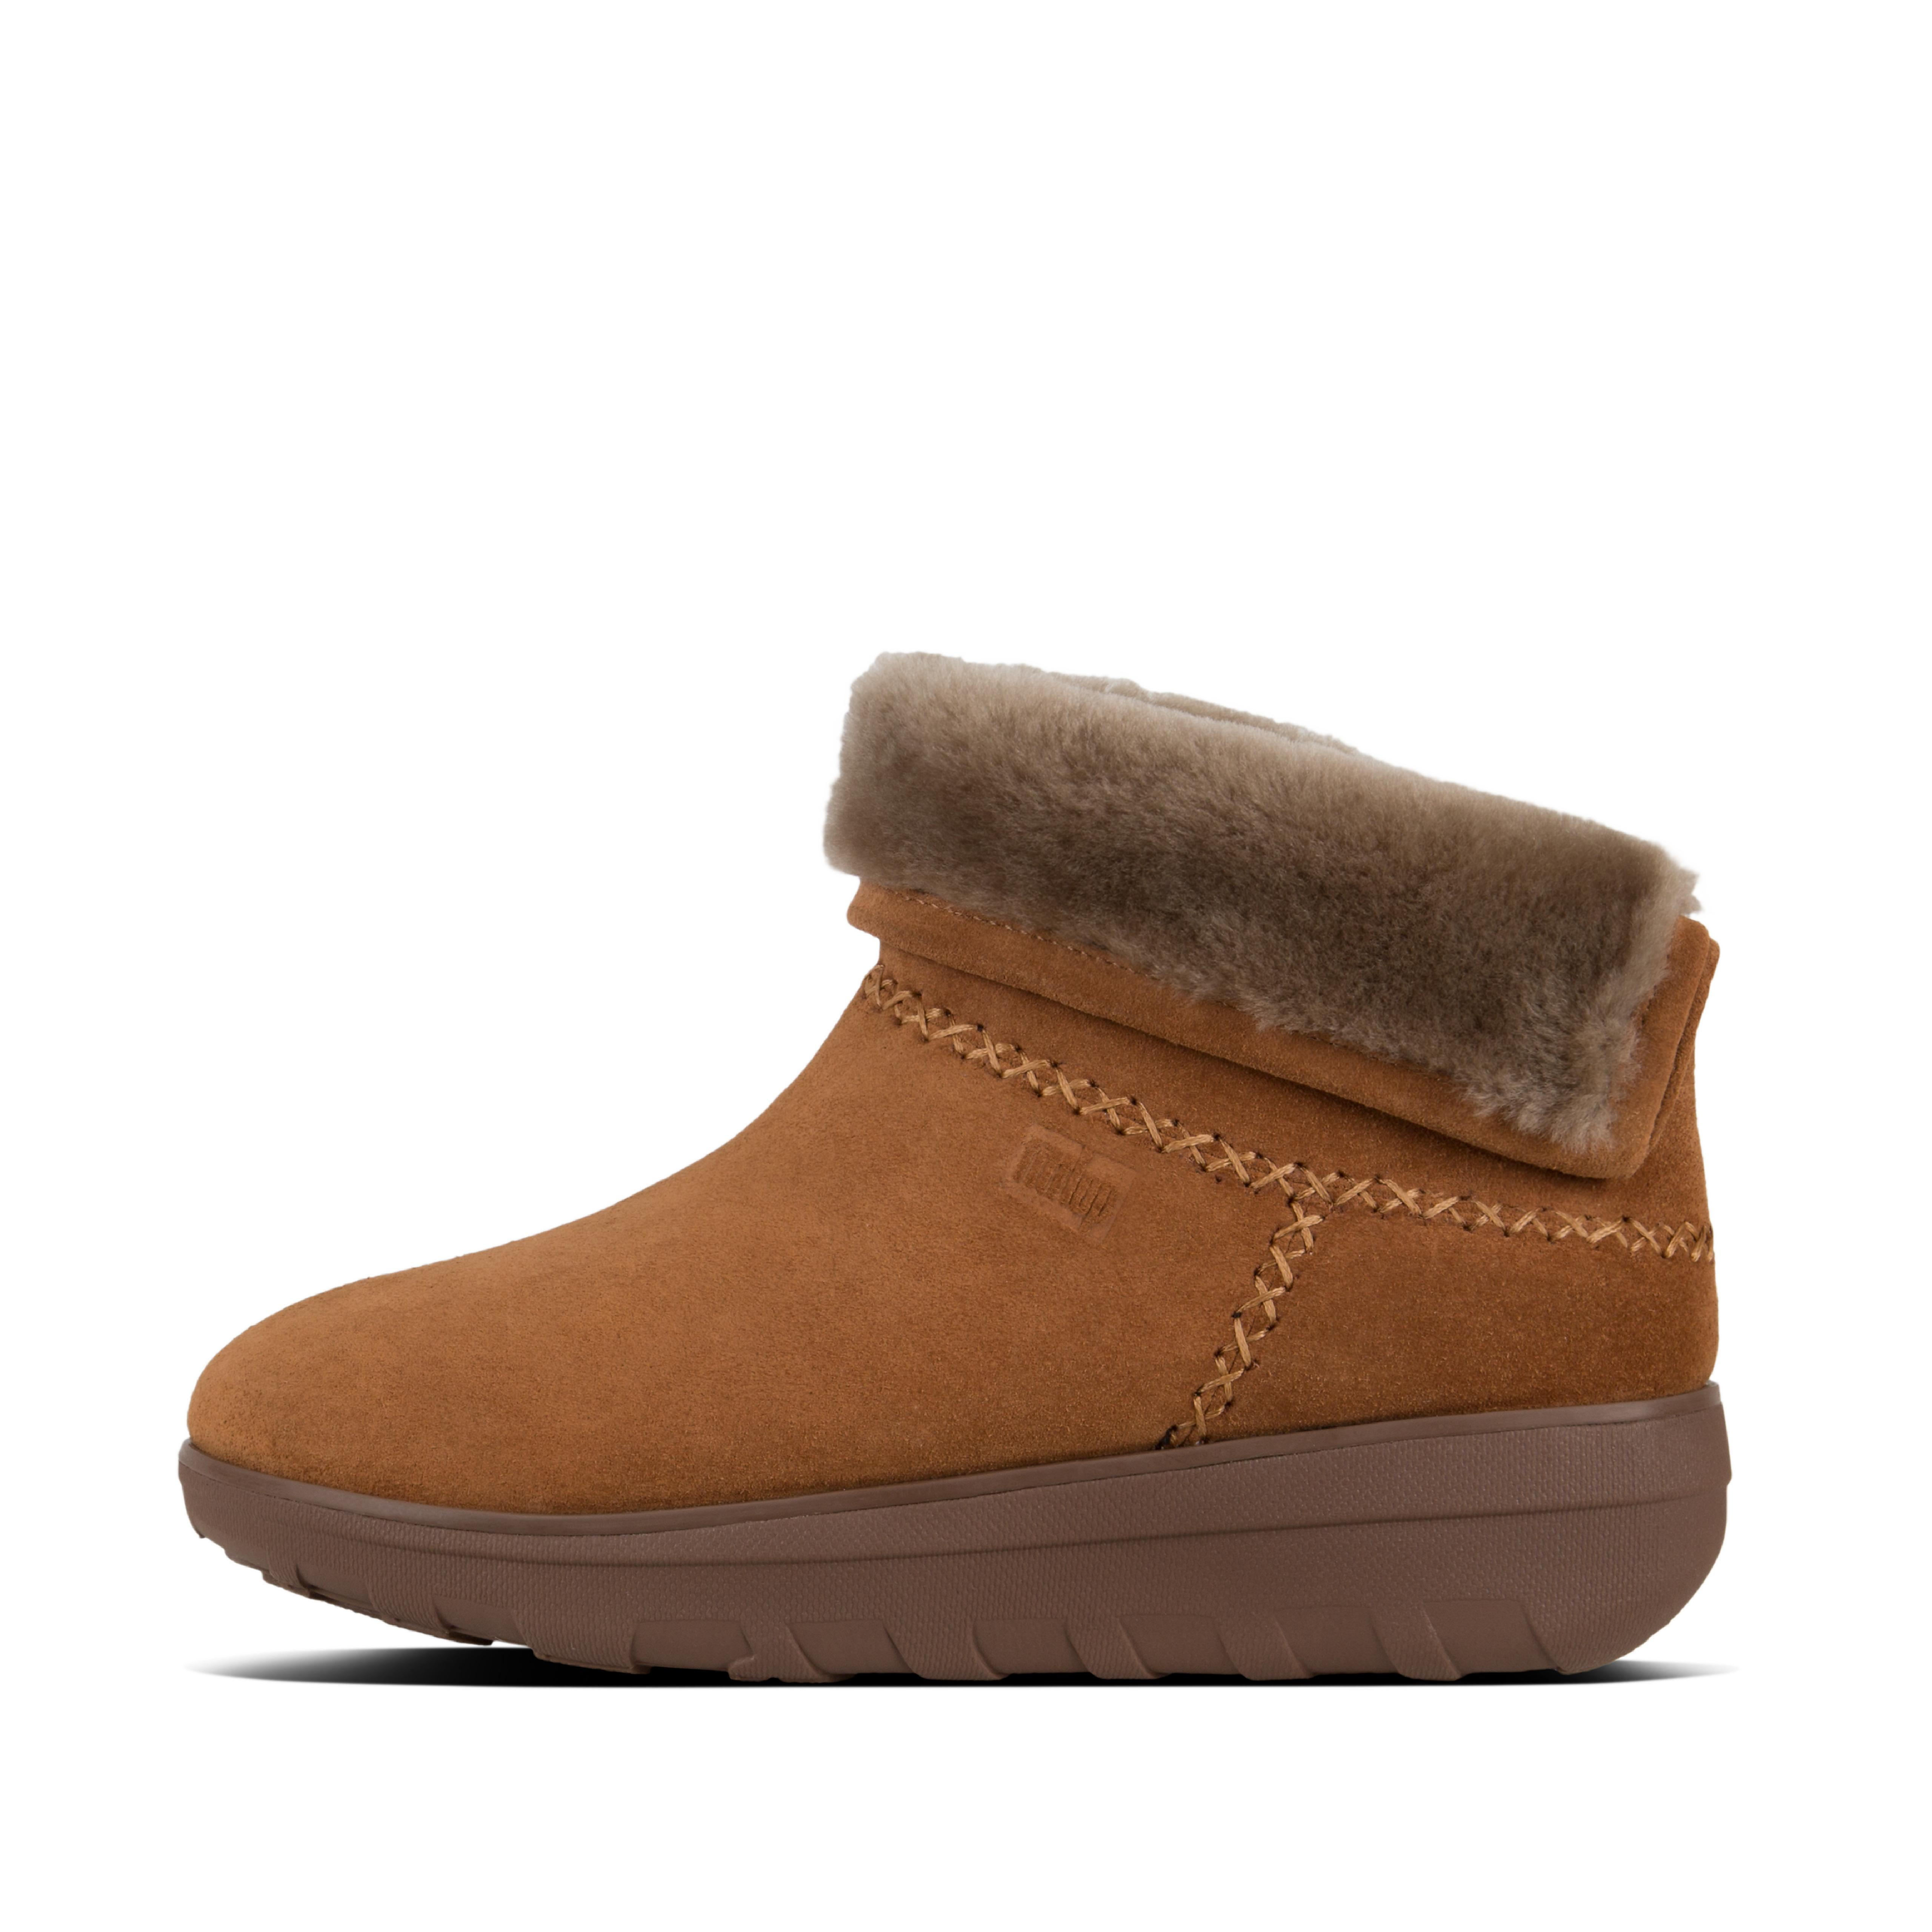 Our updated little Mukluk shorty boots are like dreams for your feet, with their fluffy wool shearling lining, a flip-up /fold-down cosy cuff, and unbelievable underfoot cushion. Unbeatable for sheer 'snug', wear them with or without socks until the summer comes. Our bet for your new favourite boots.